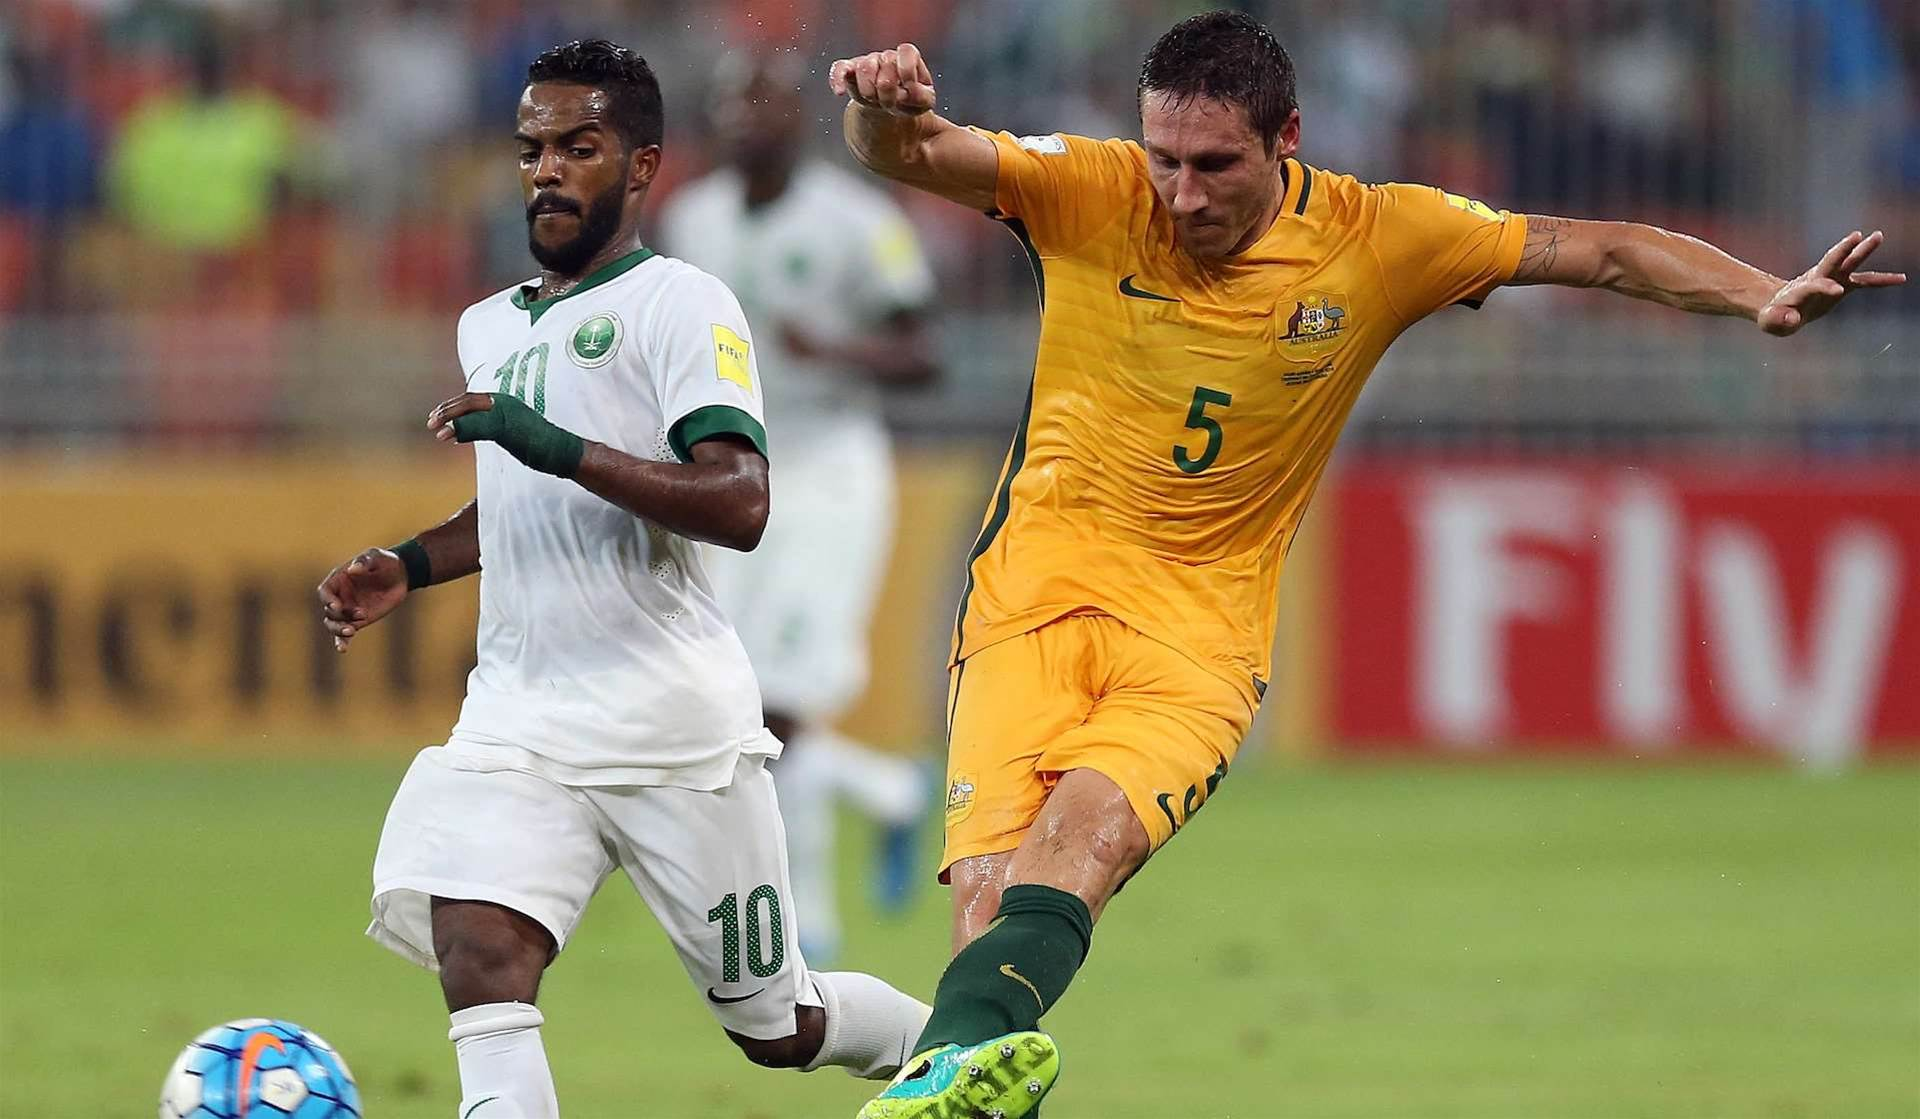 Socceroos' perfect record ended